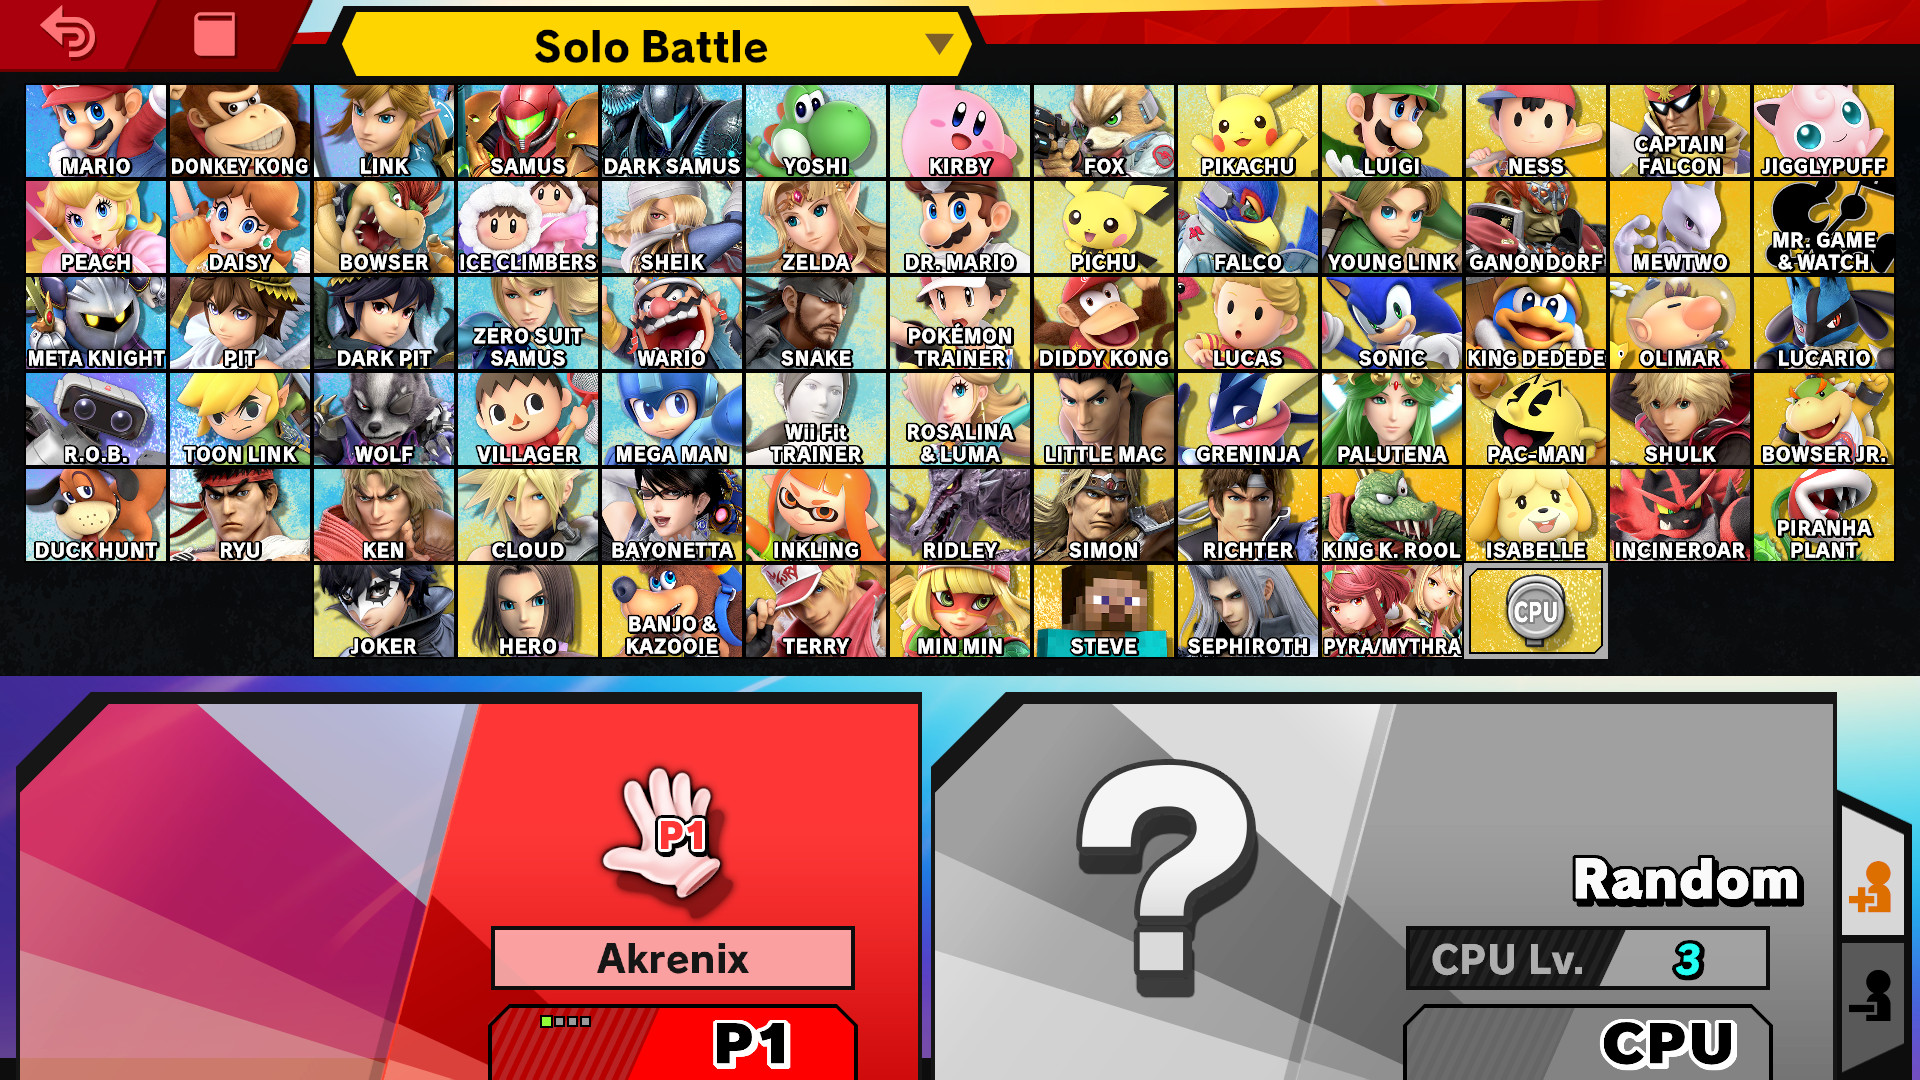 A modder created a way to take Fire Emblem out of Super Smash Bros. Ultimate screenshot